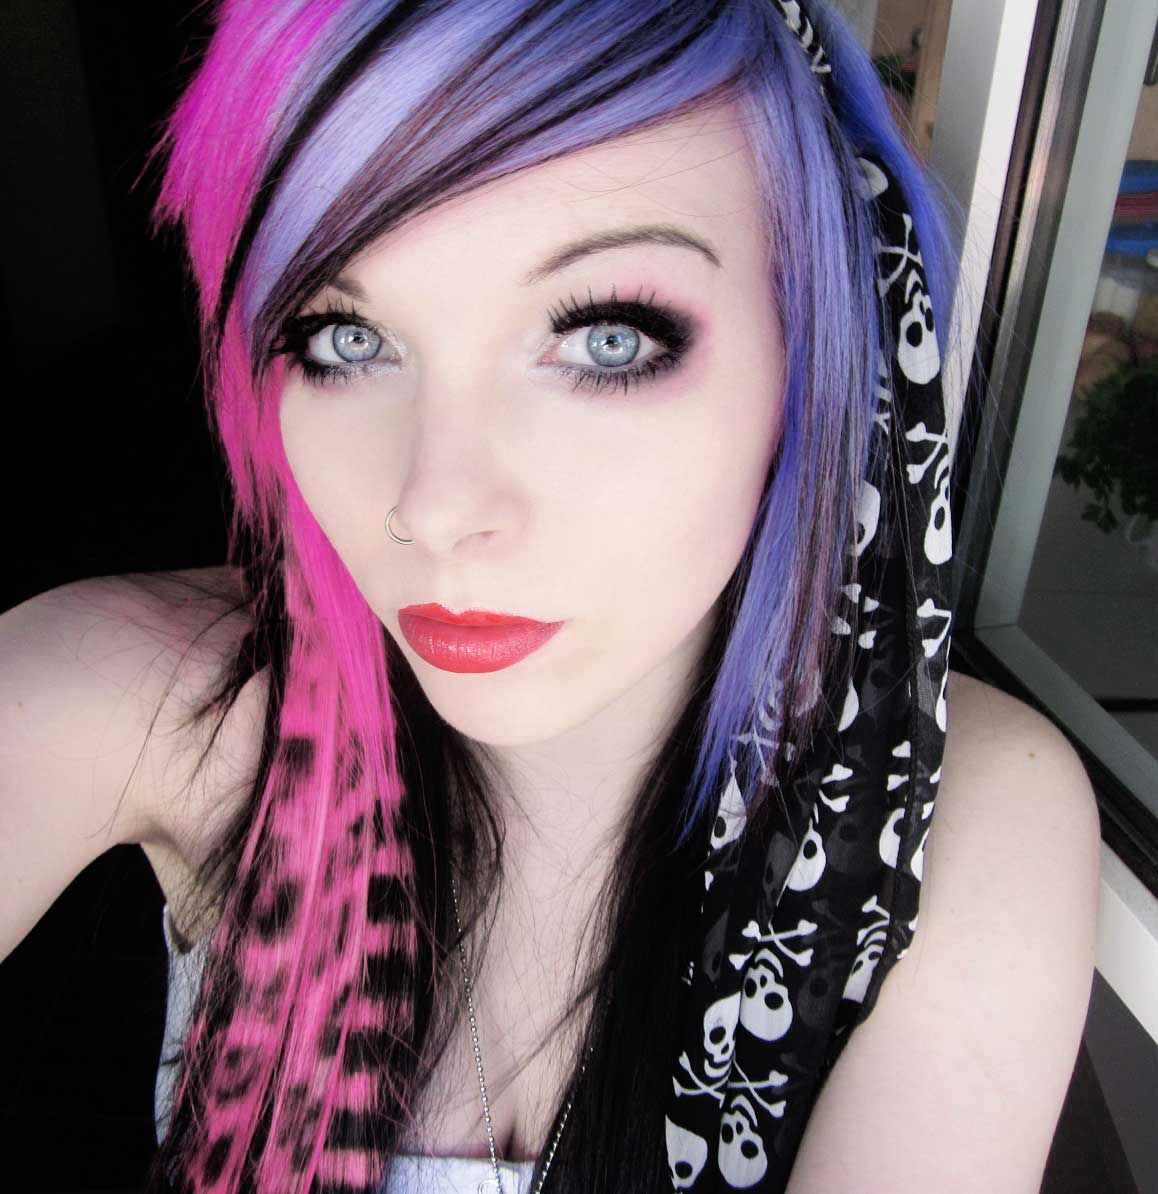 Emo Imagens Emo Girl Ira Vampira Scene Queen Colorful Hair